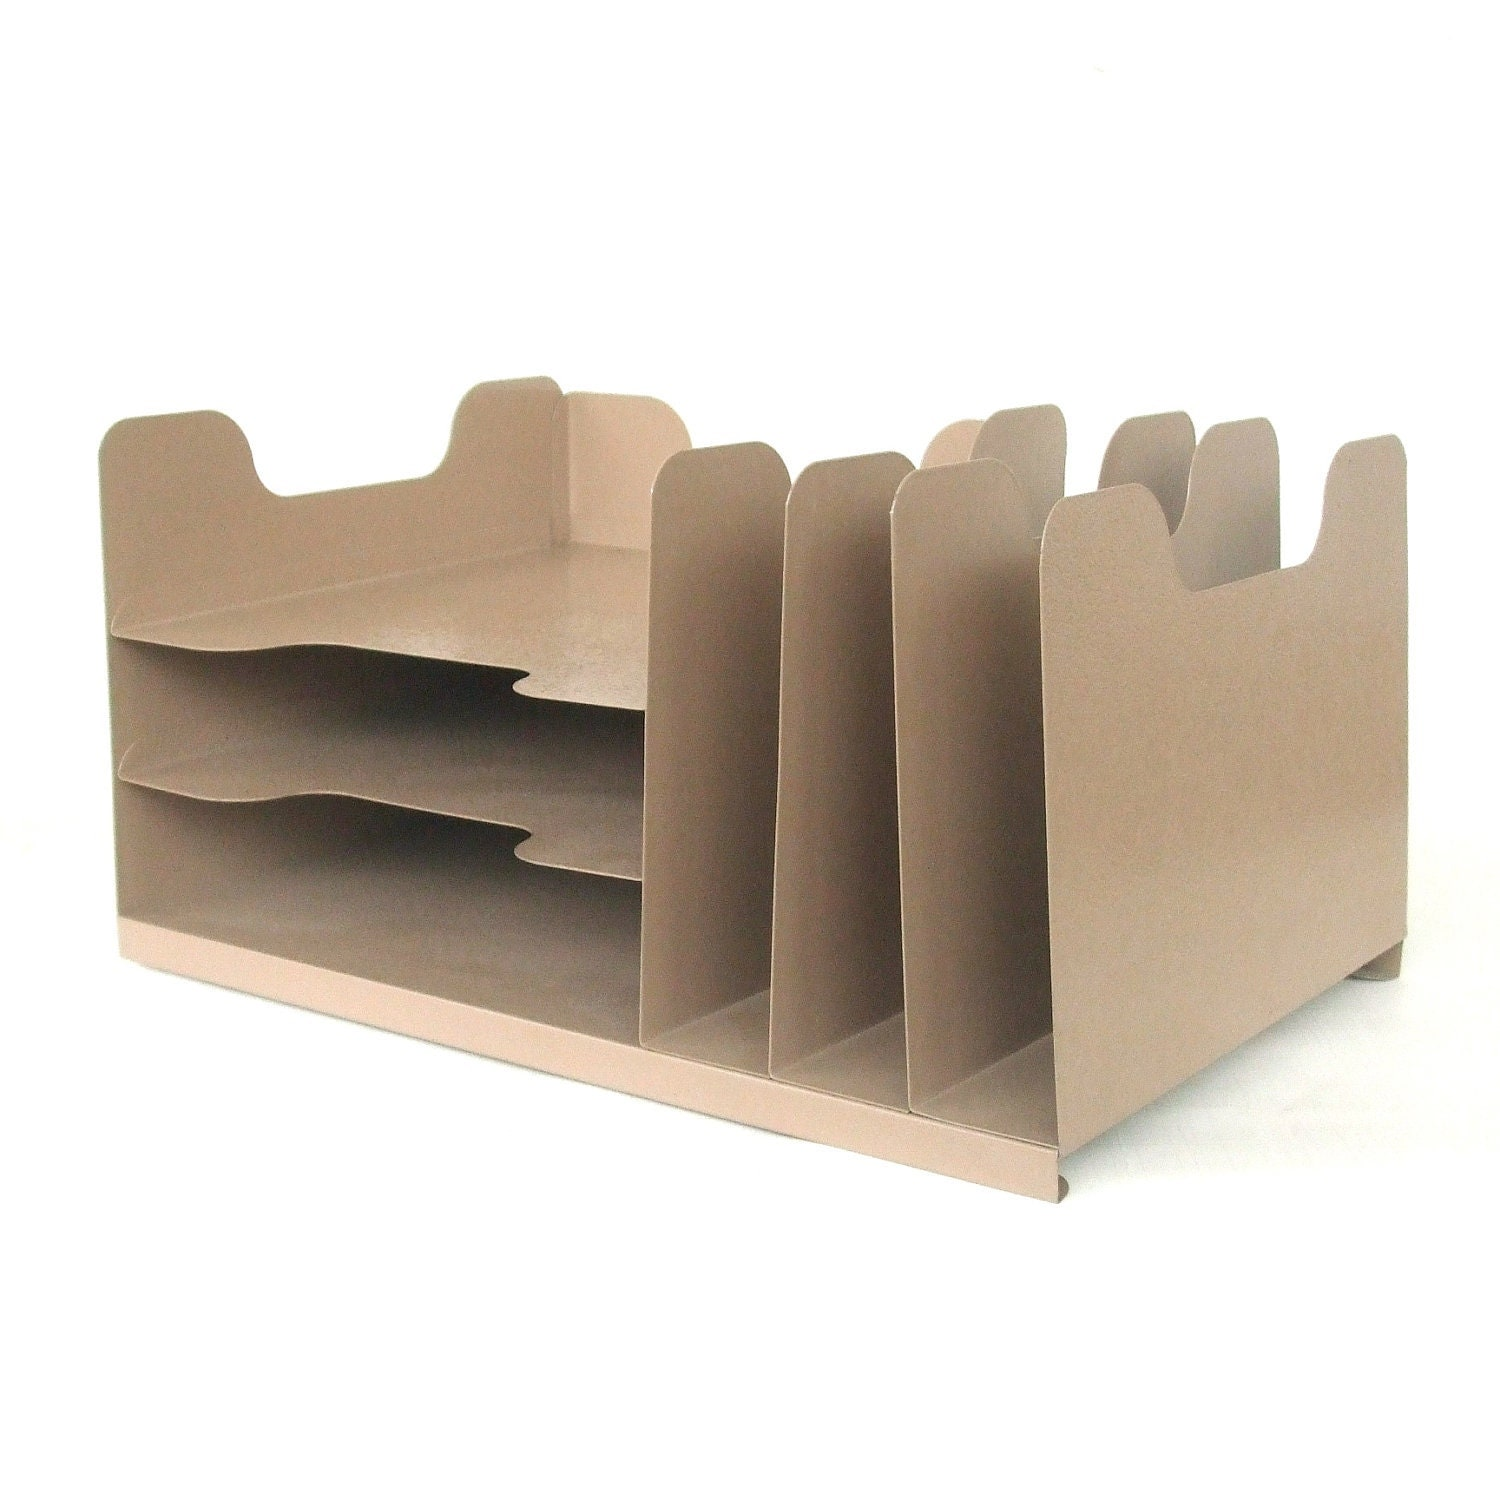 in out box desk organizer office supply beige by lauraslastditch